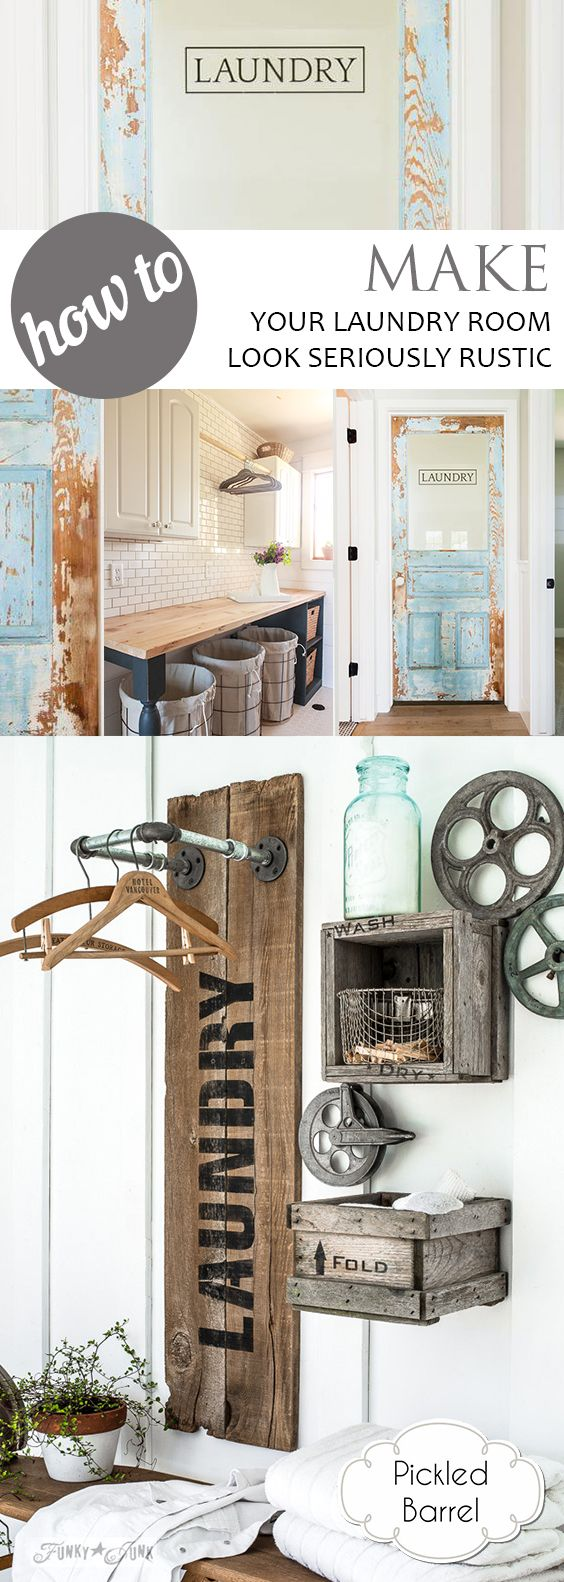 How to Make Your Laundry Room Look Seriously Rustic